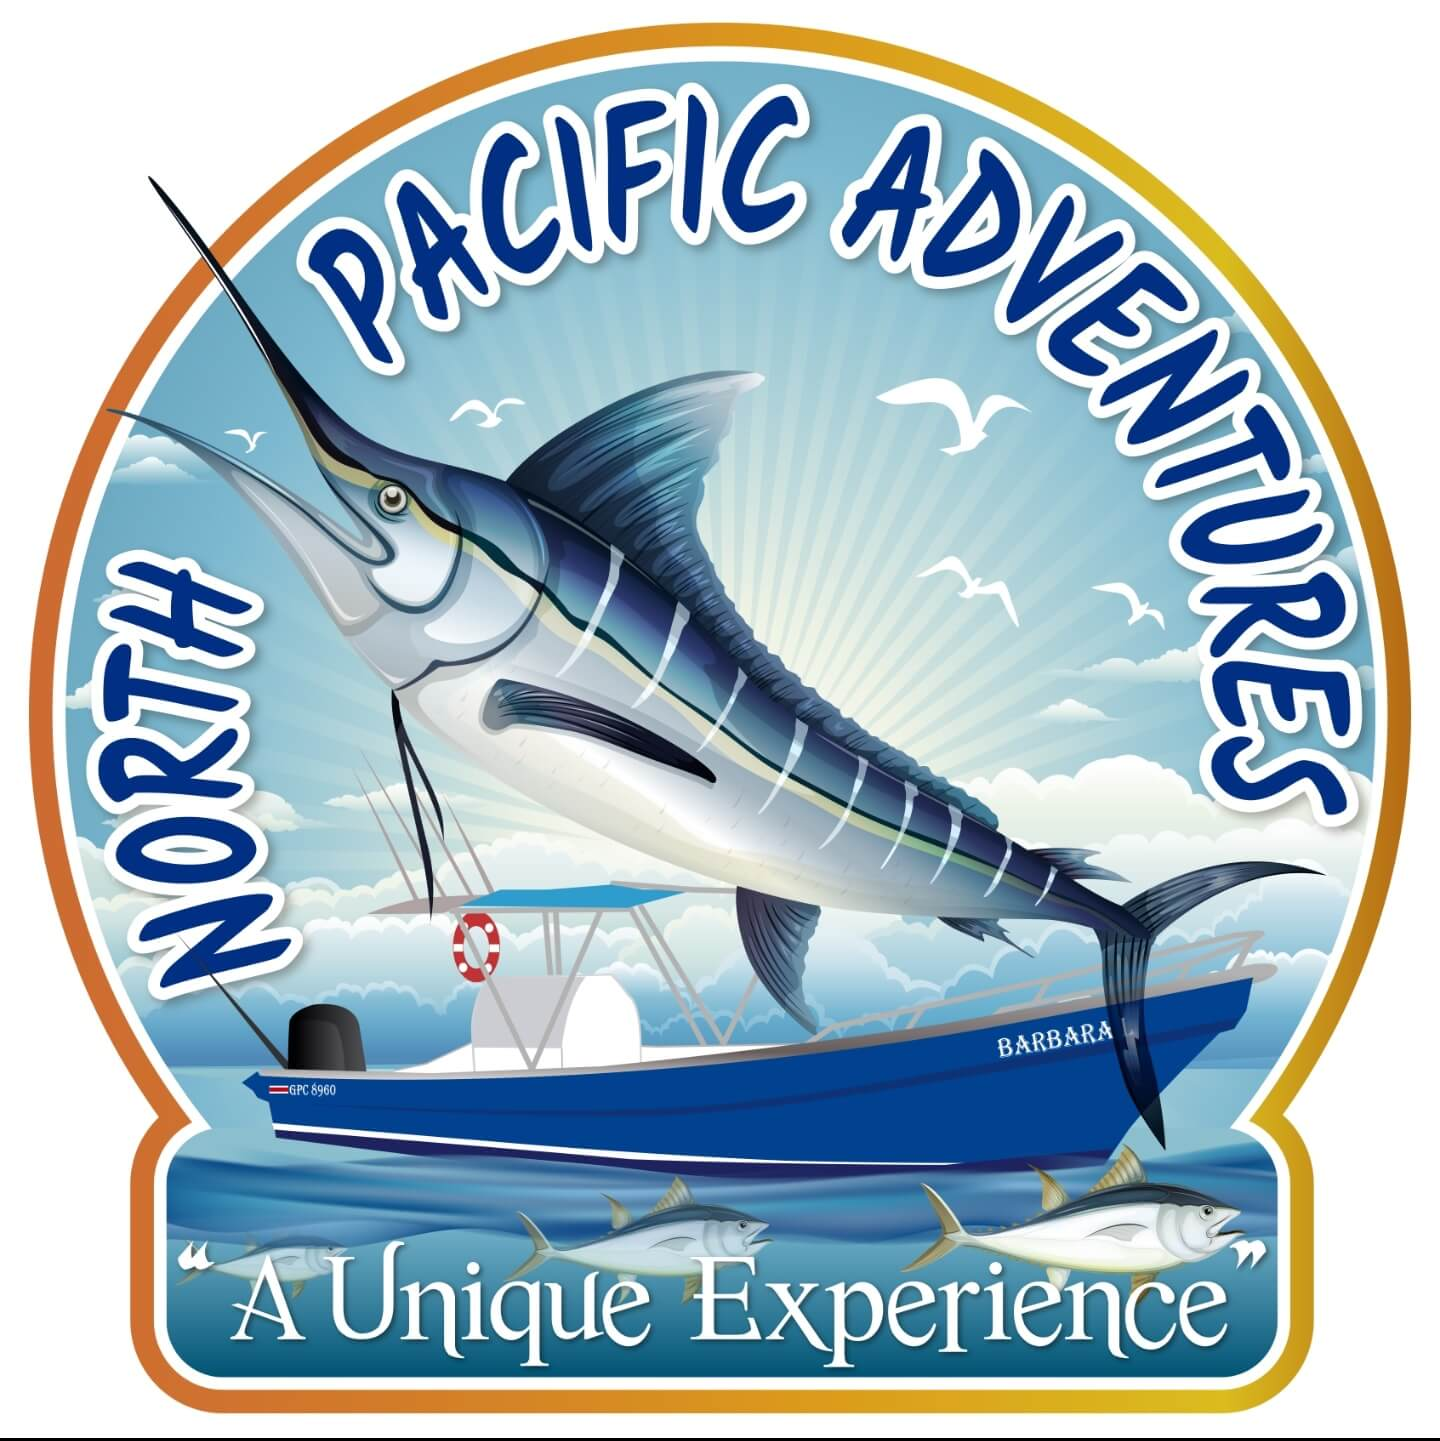 North Pacific Adventures